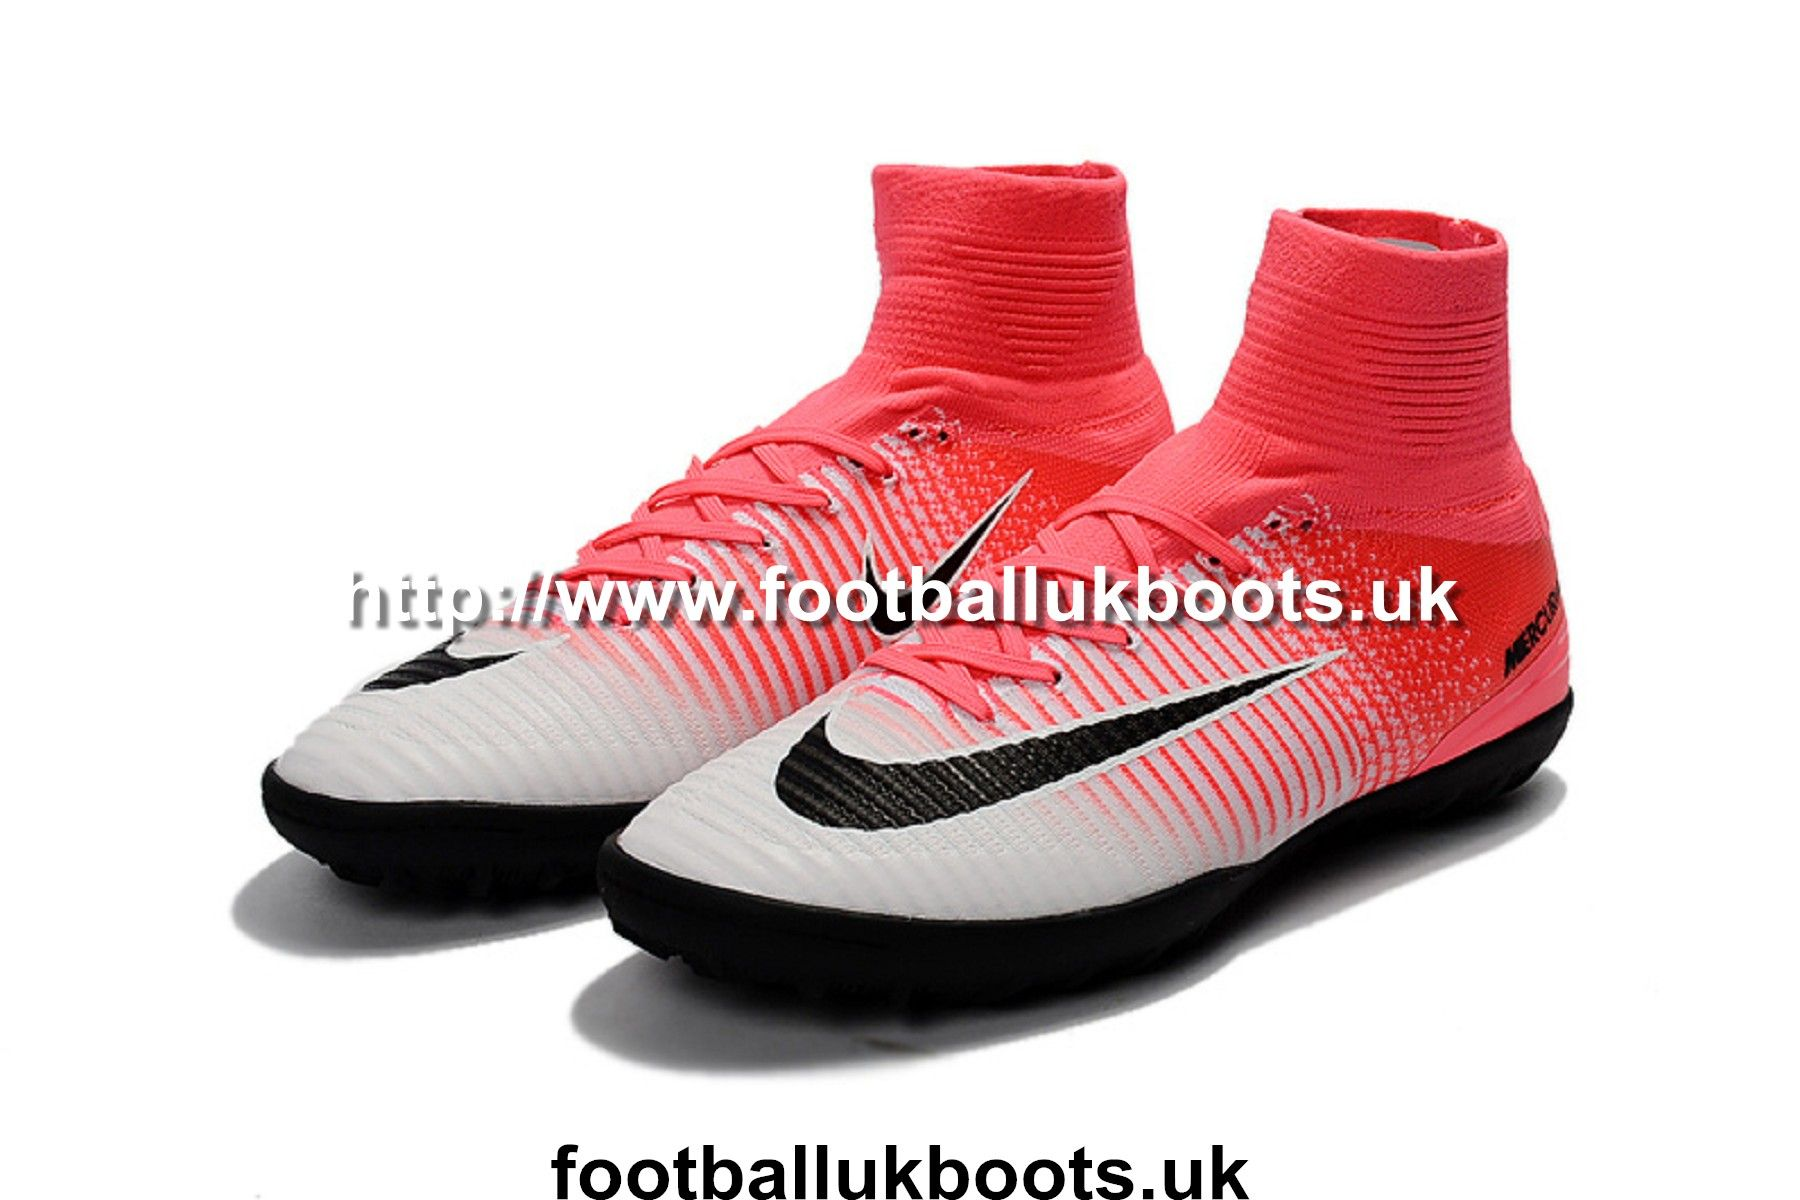 Luxury Kids Football Boots Nike MercurialX Proximo II TF - Race  Pink/Black/White is so hot on our site now, hurry up to buy our cheap  football cleats for ...